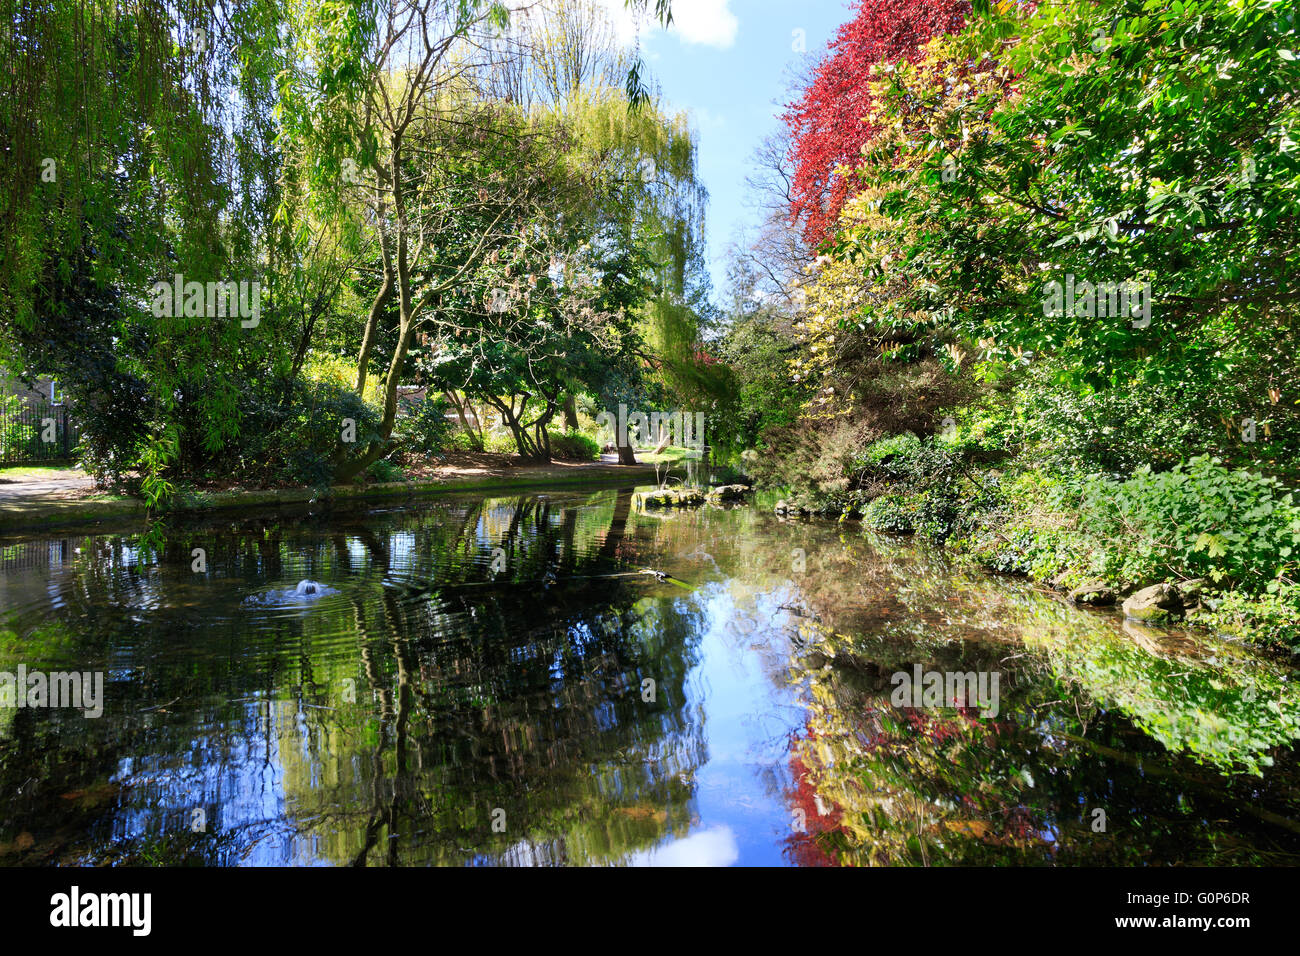 Trees and foliage with reflections in canal water with ripples at the New River Walk, Canonbury, London - Stock Image